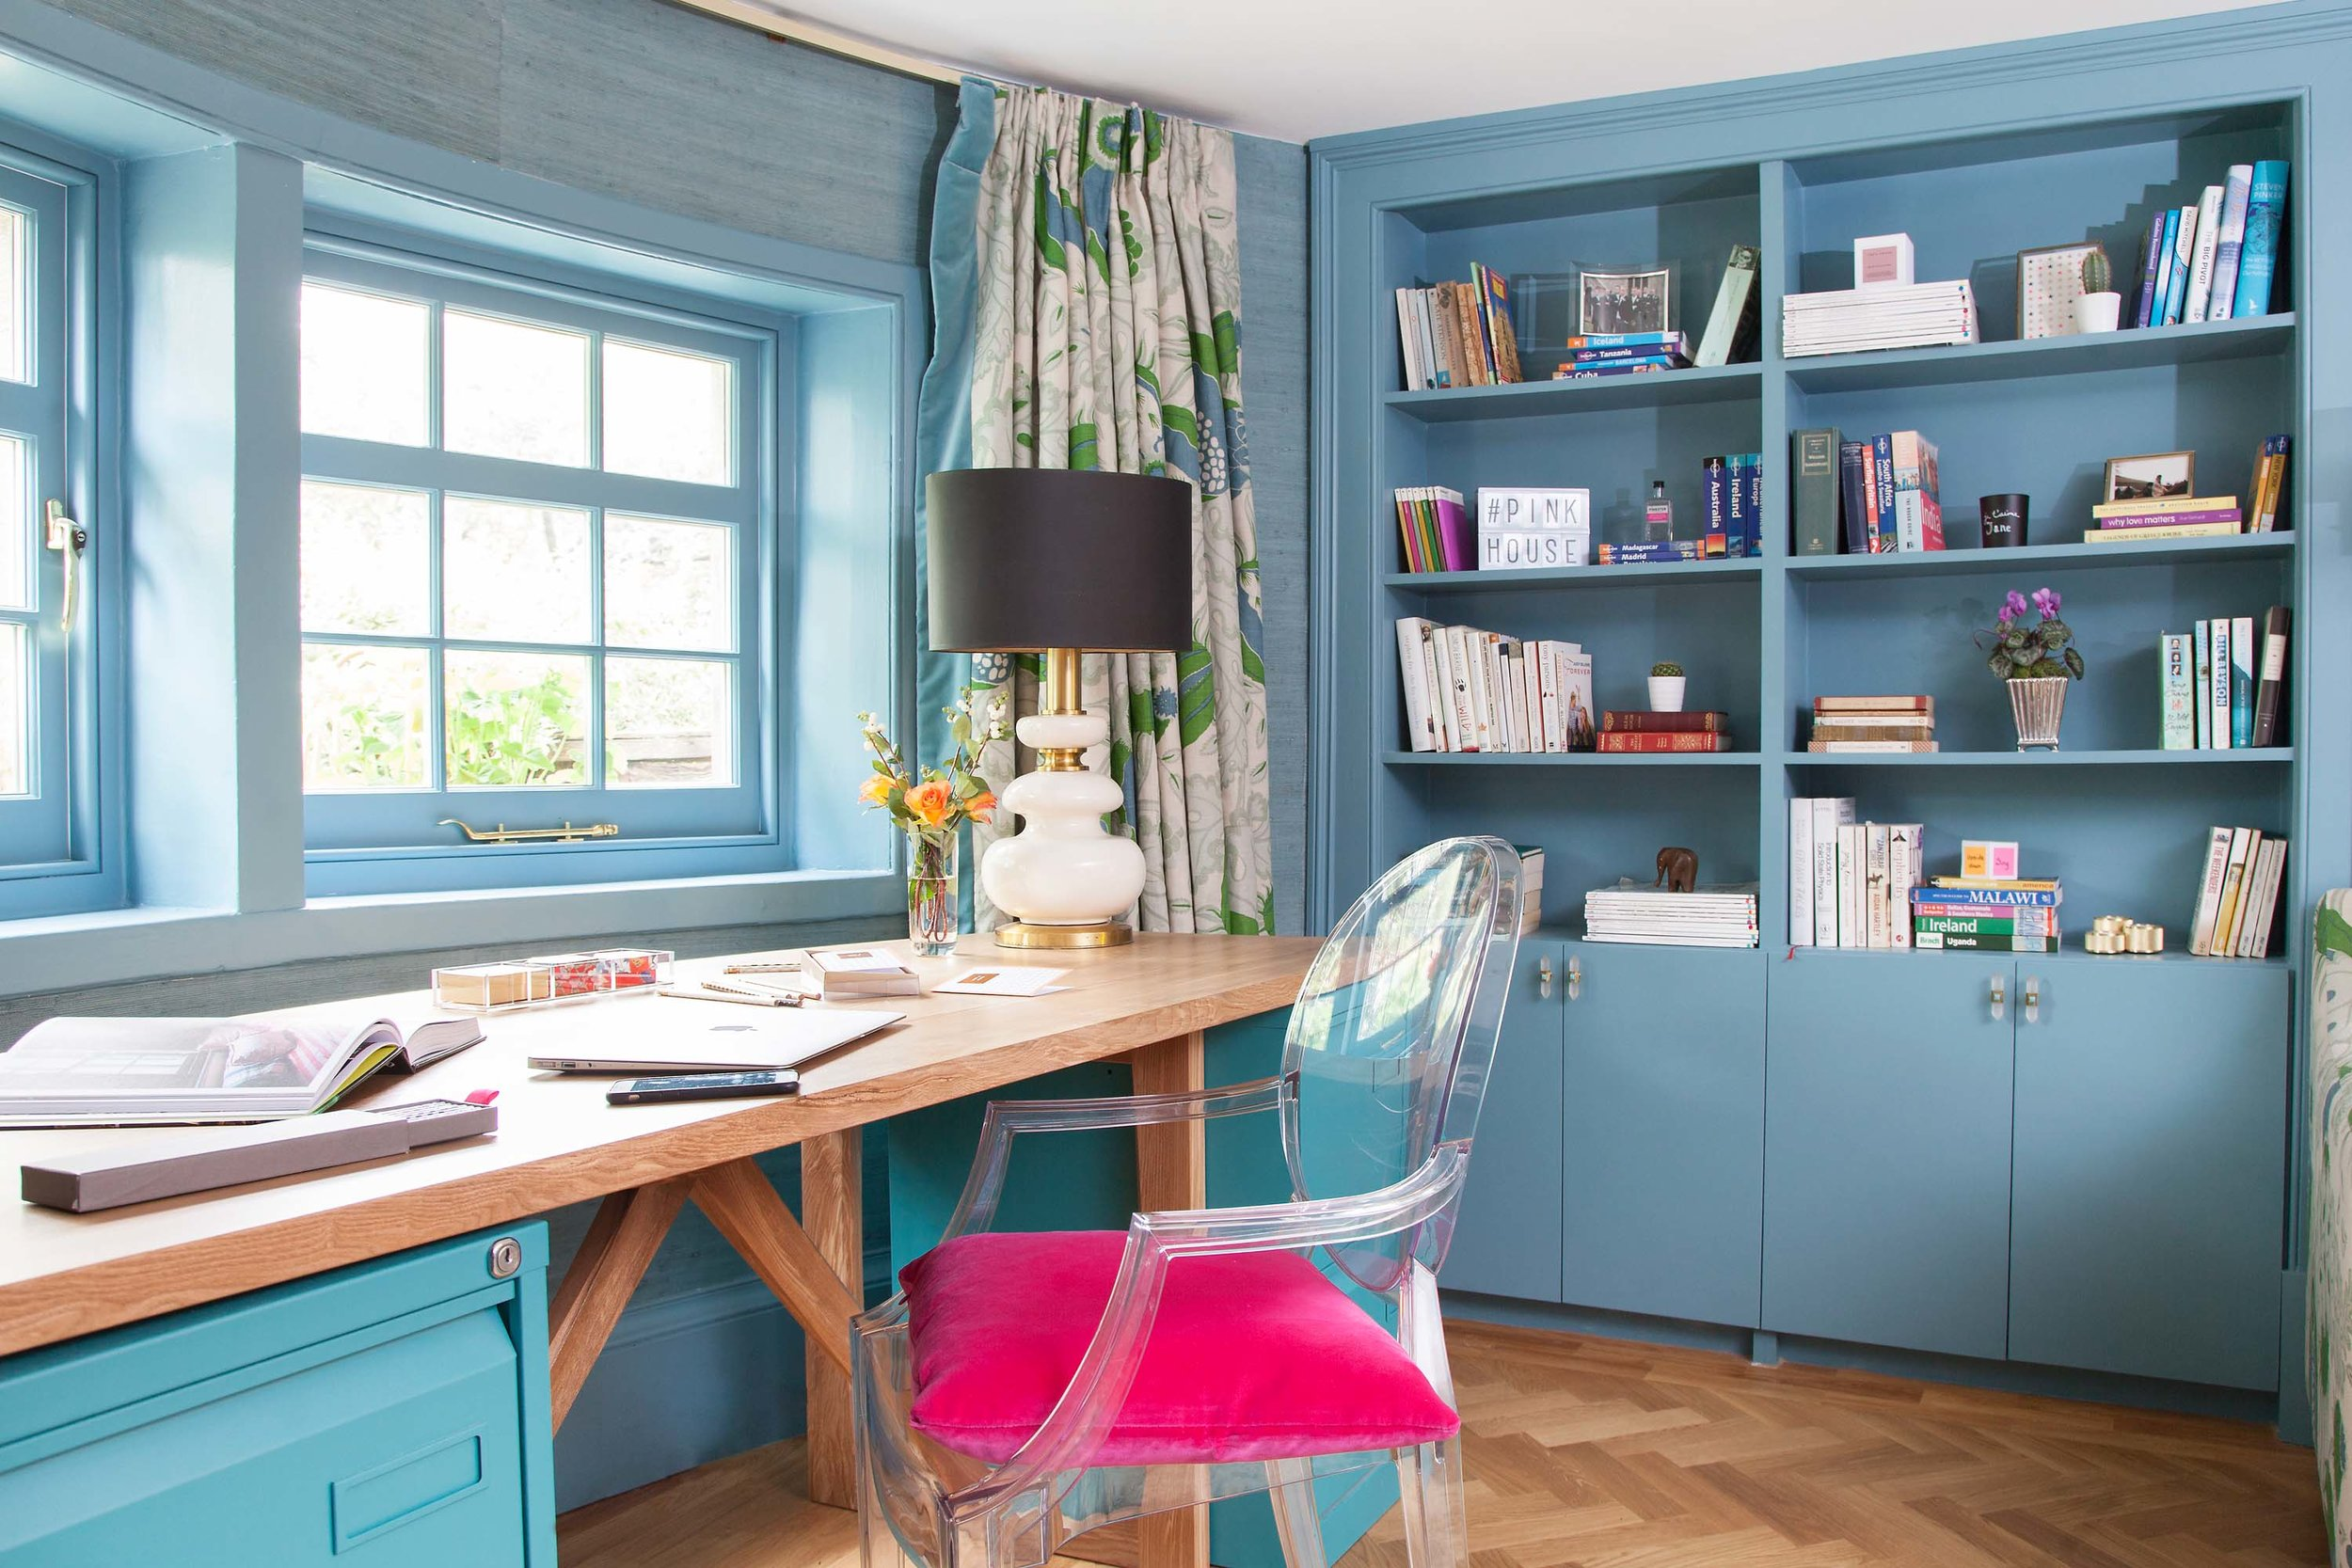 Farrow & Ball stone blue, Kartell Louis ghost chair